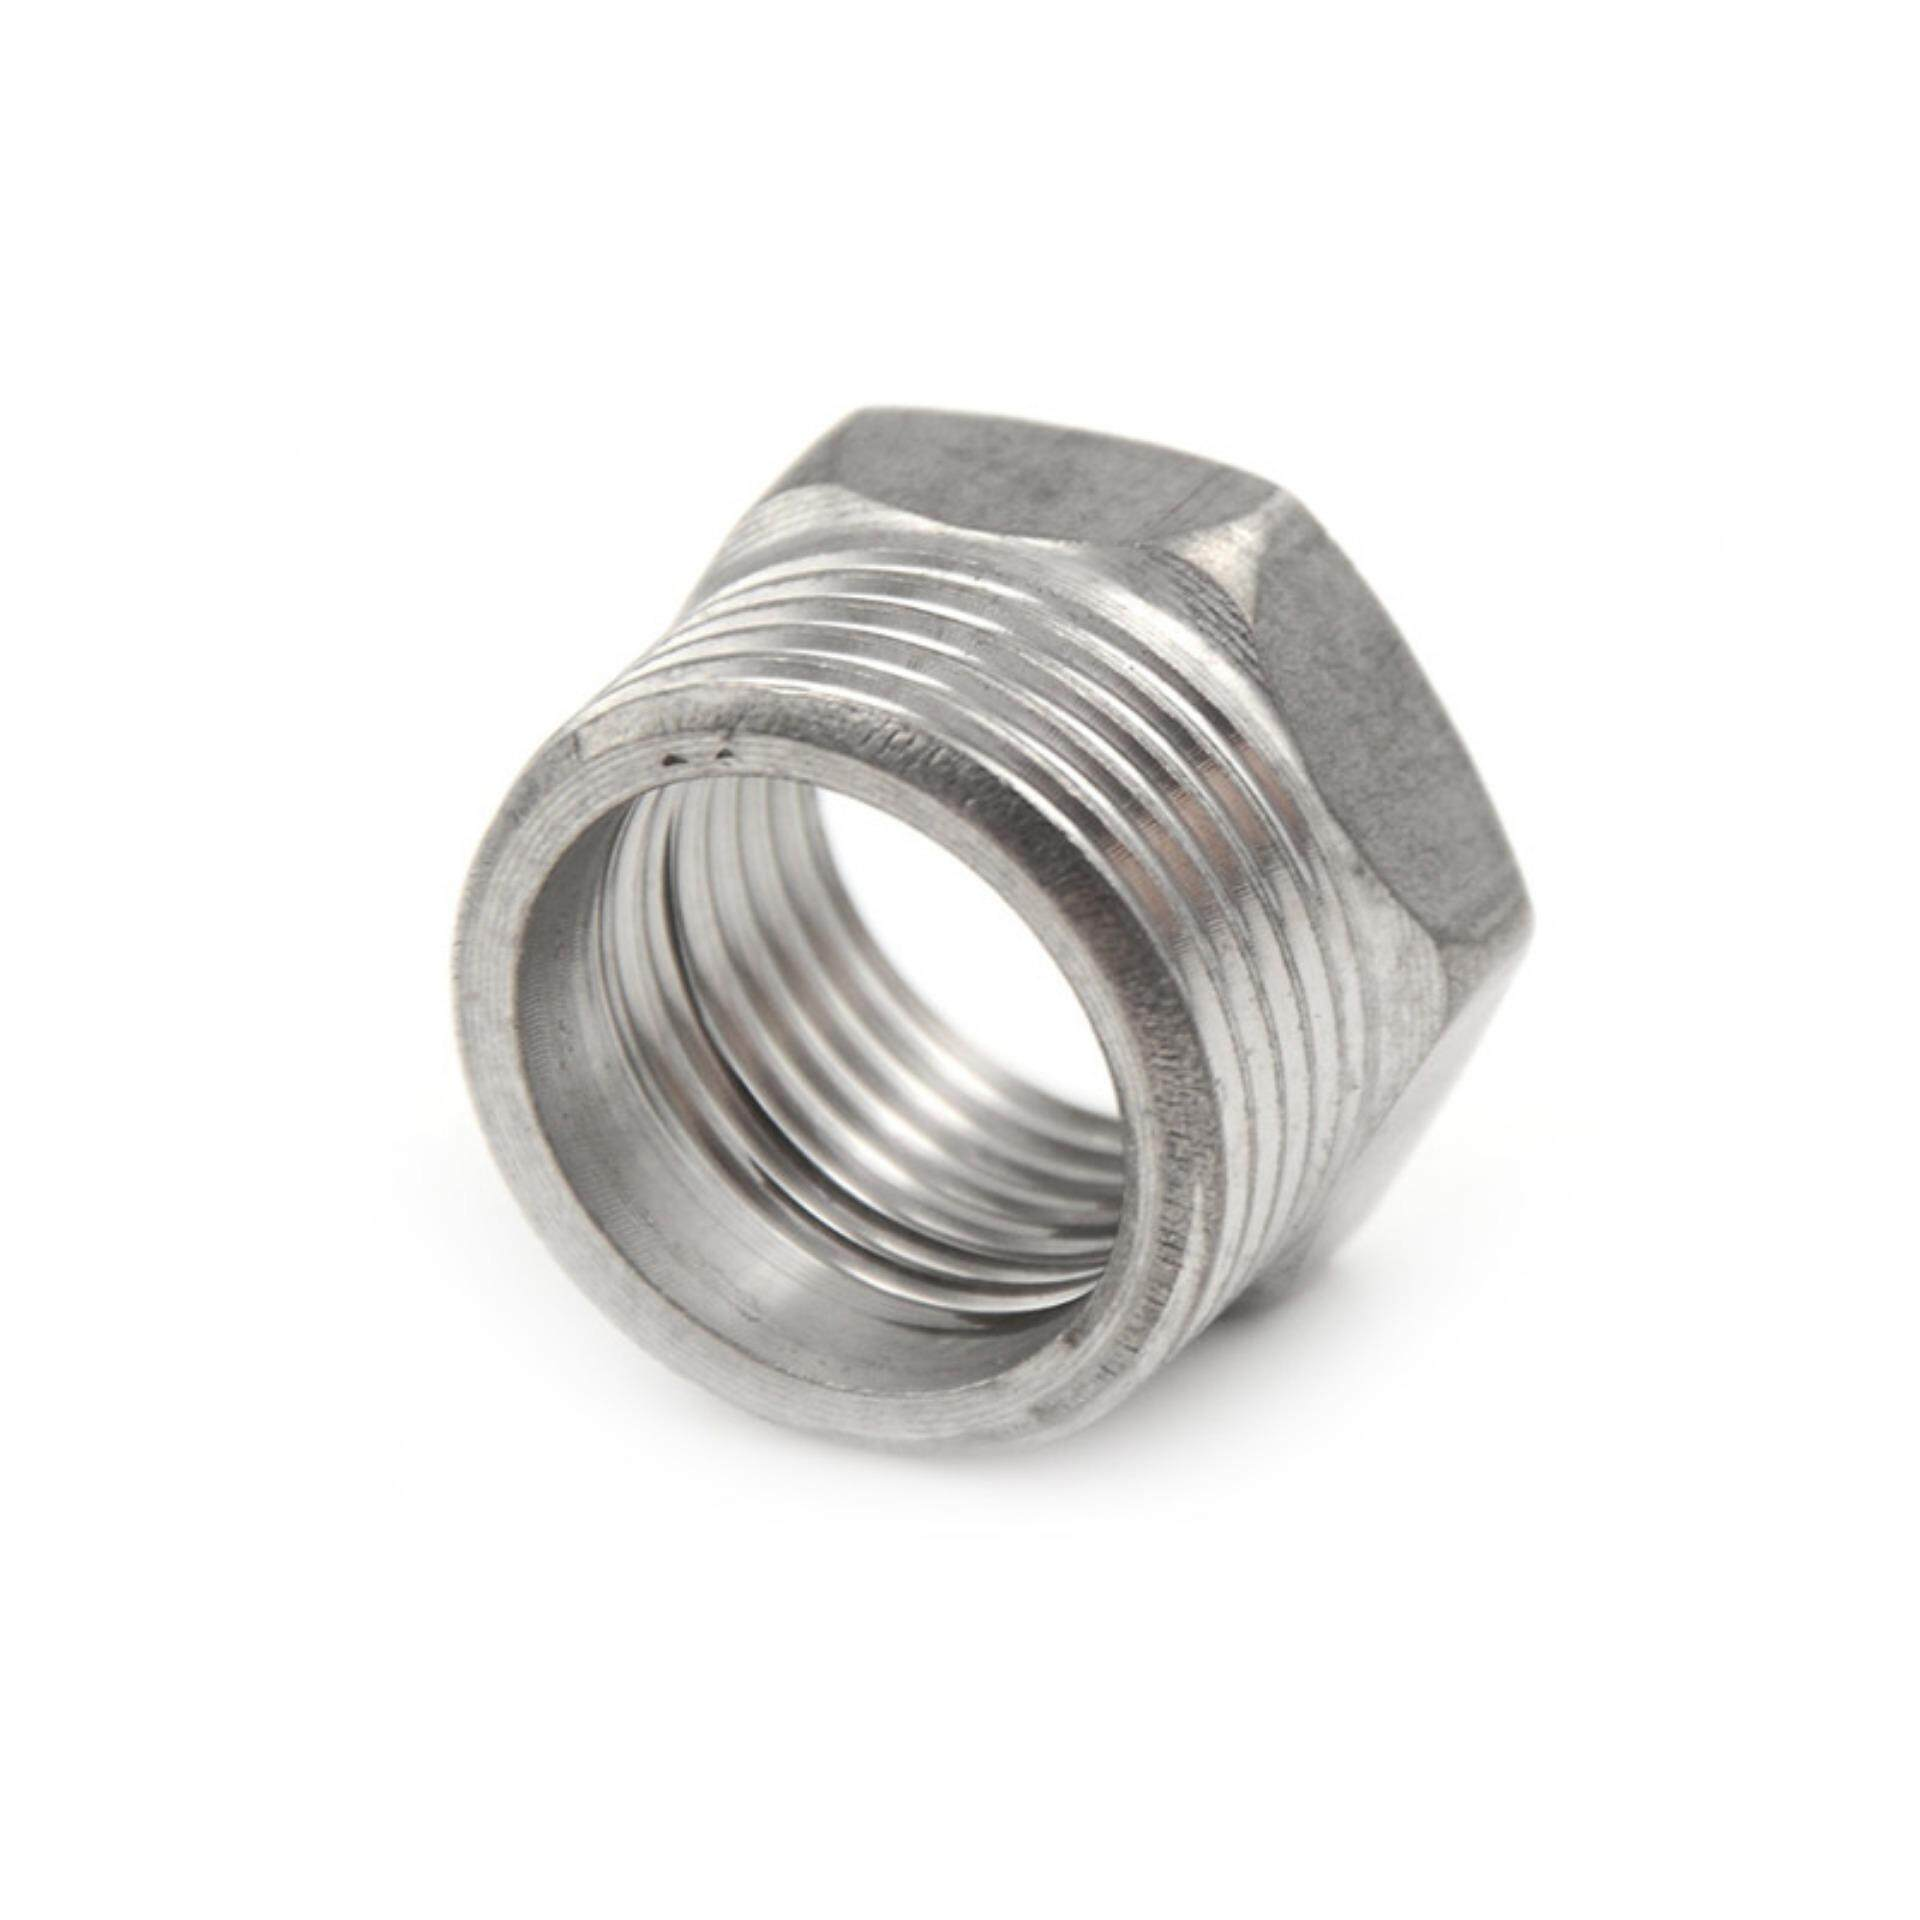 3/4 Male X 1/2 Female Connector Thread Reducer Bushing Pipe Fitting NPT SS 201 Aliname